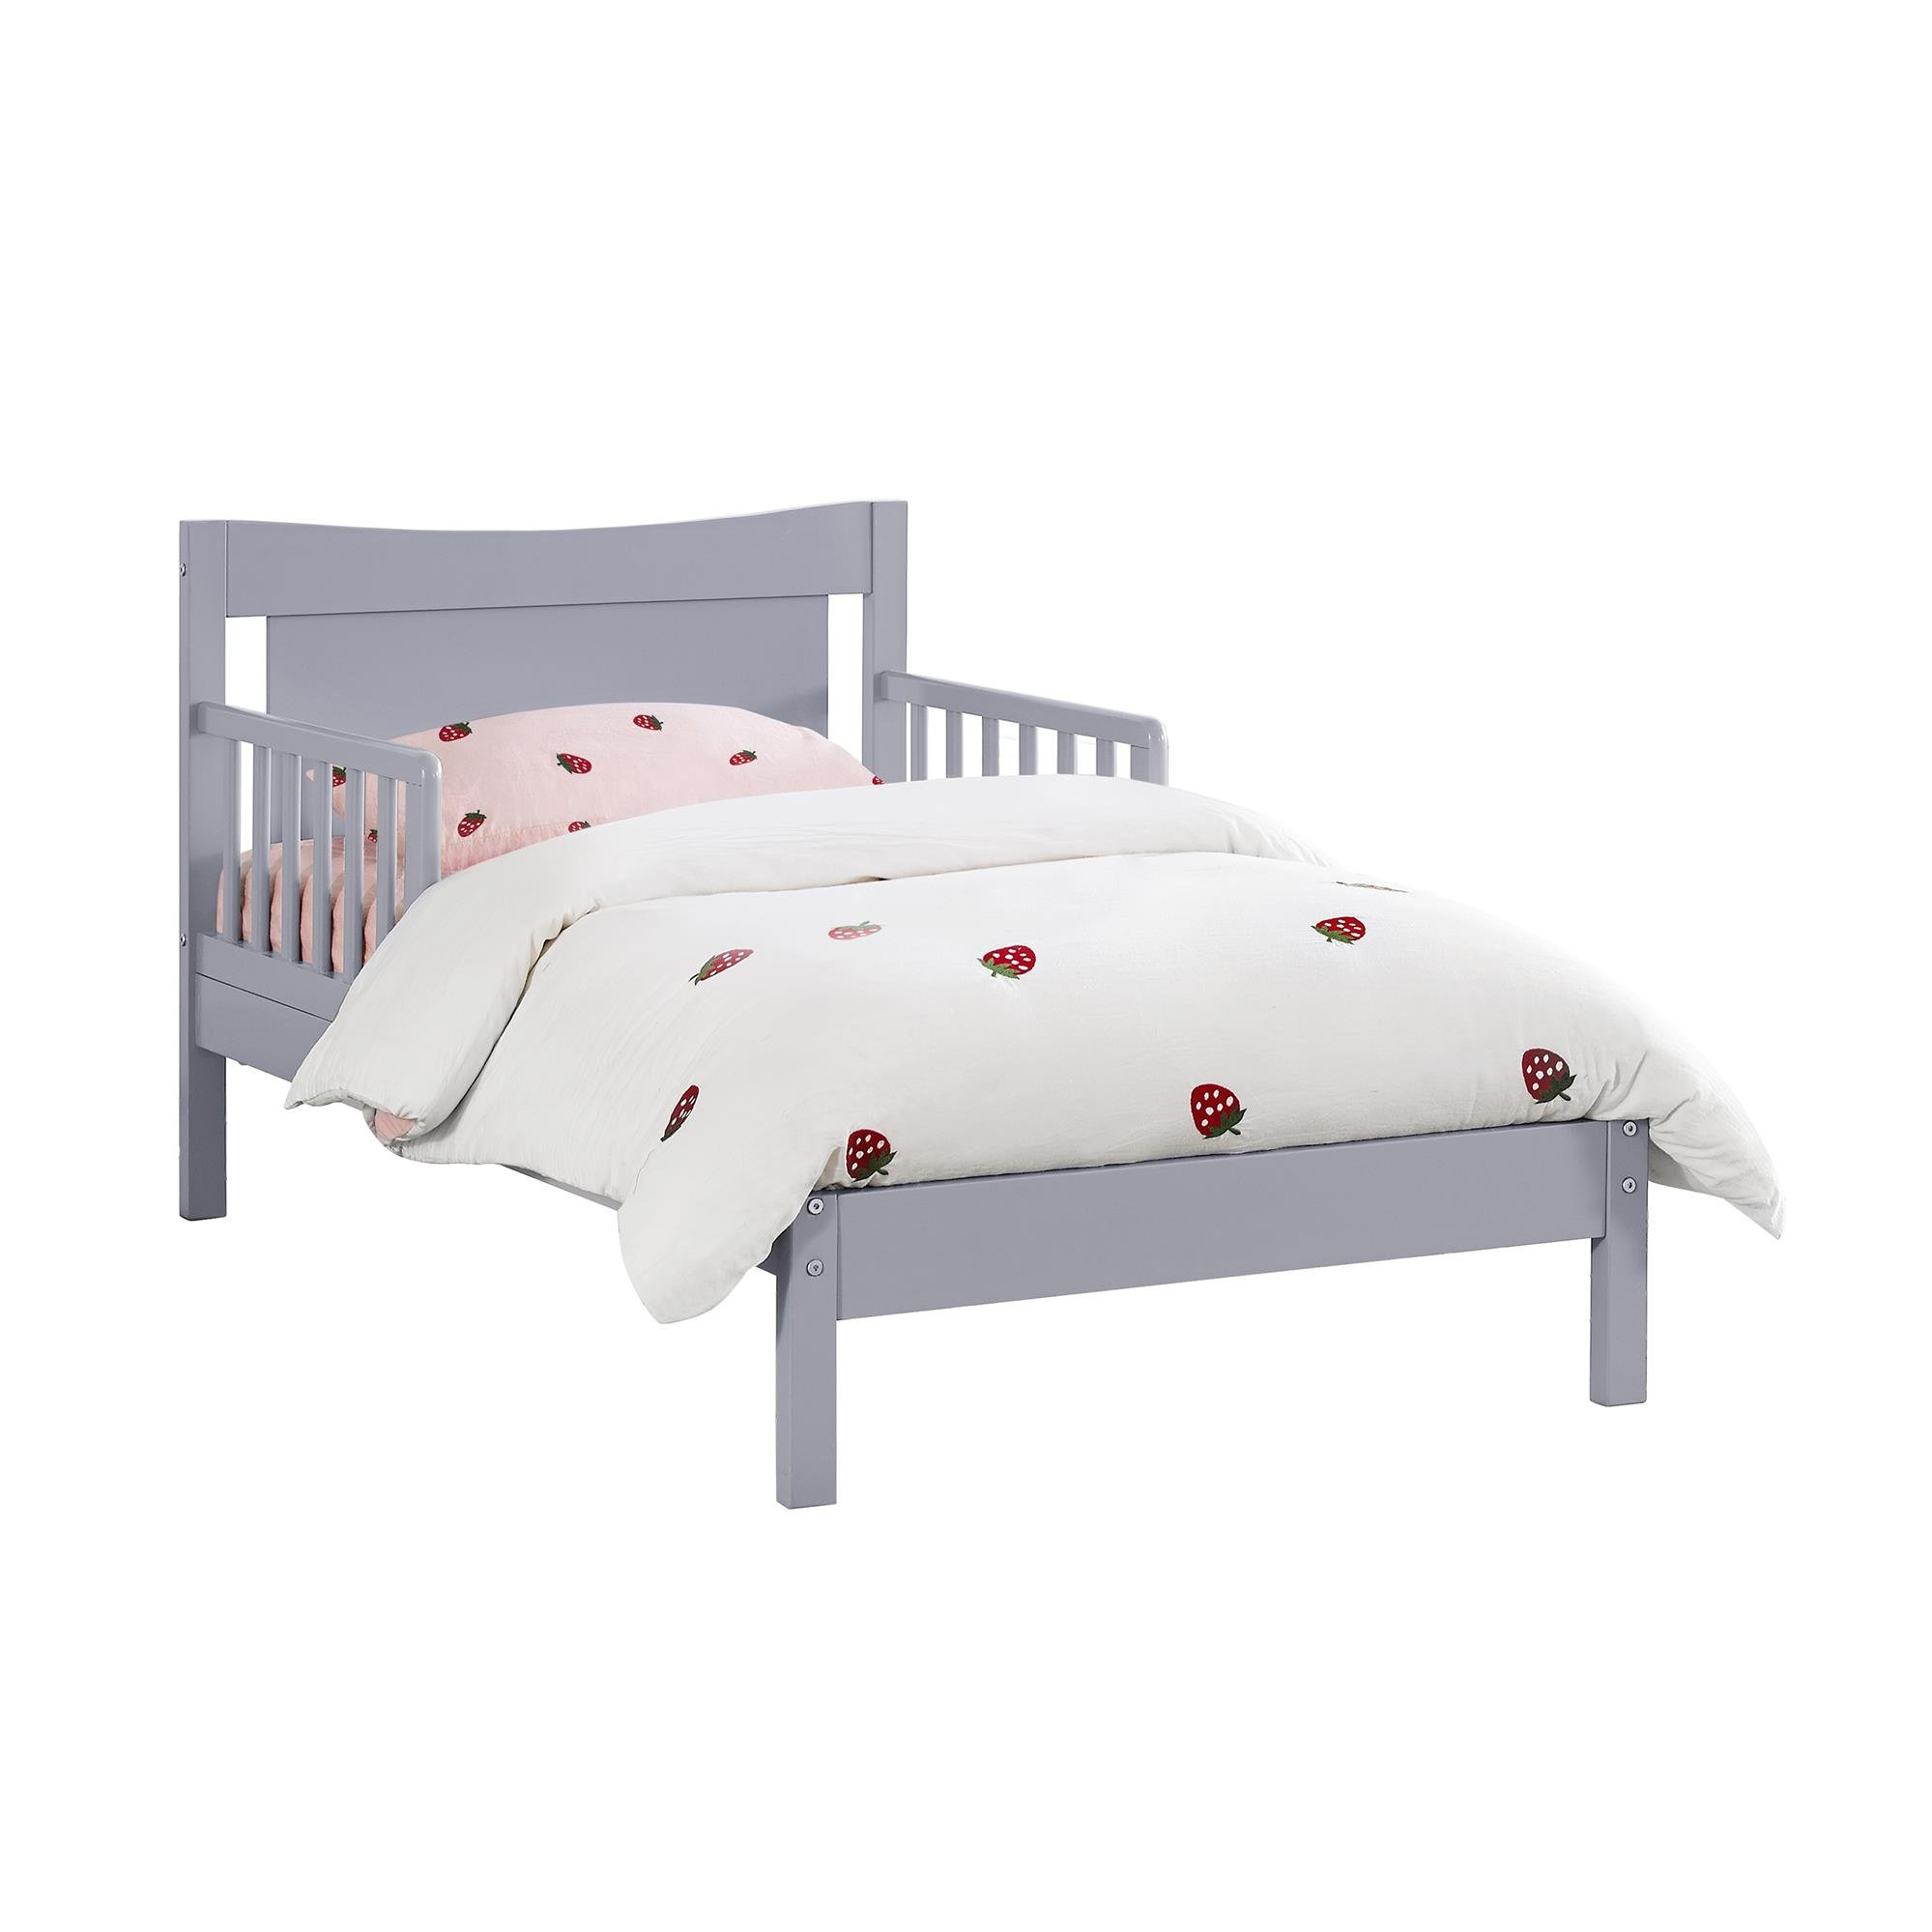 Baby Relax Memphis Toddler Bed, Gray